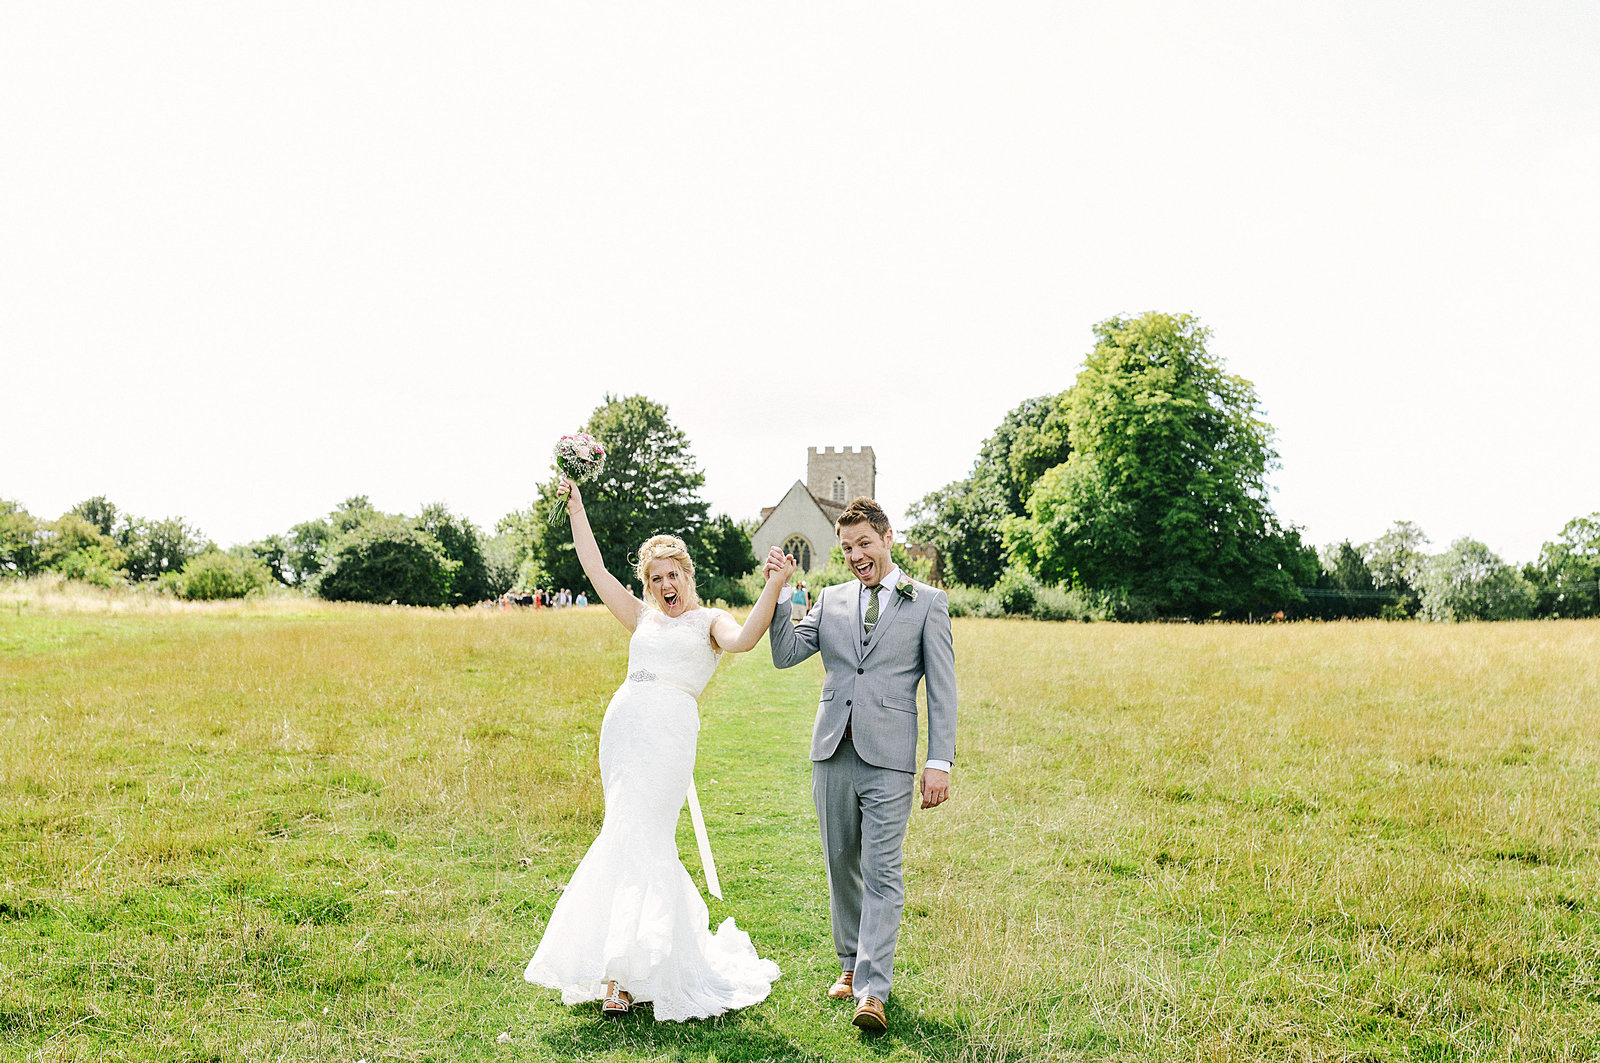 Emma & Simons Wedding 9th July 2014-163